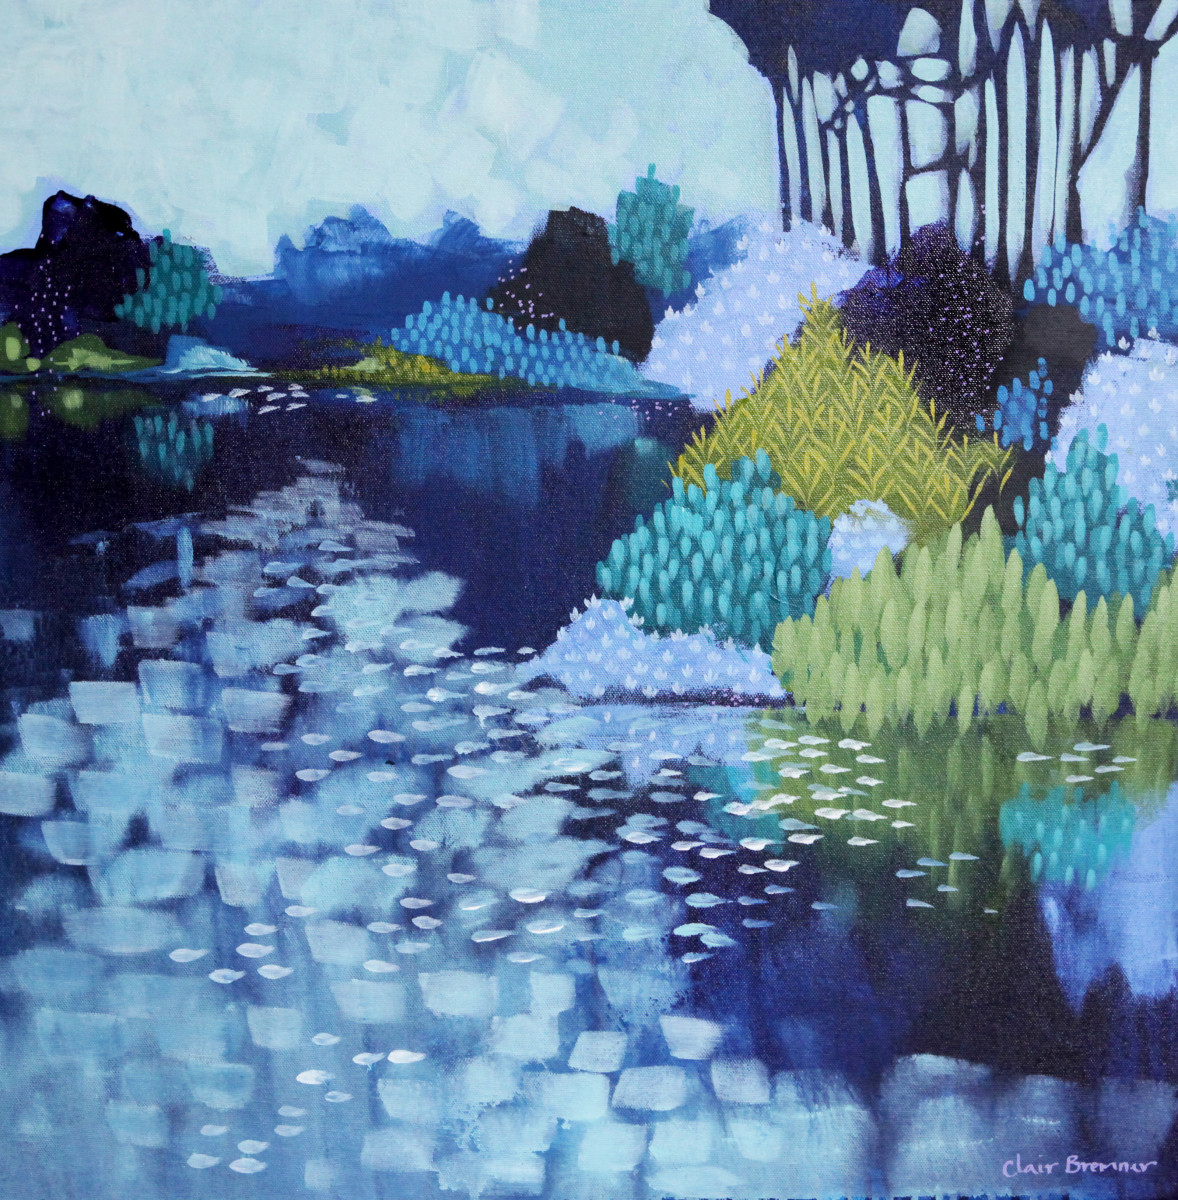 Blue Morning 2 by Clair Bremner